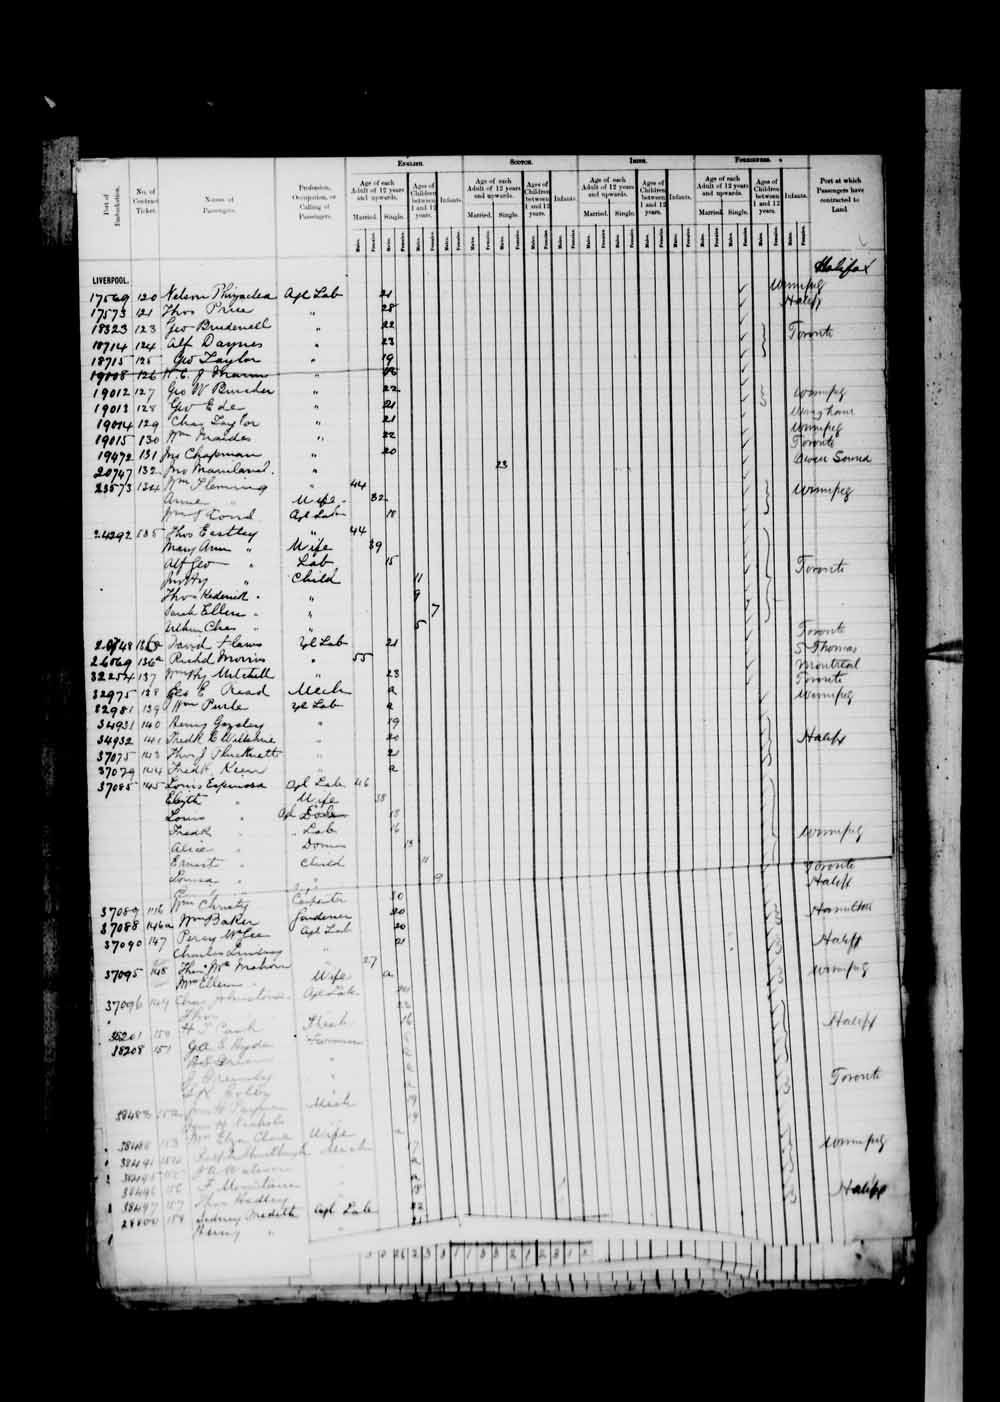 Digitized page of Passenger Lists for Image No.: e003674944